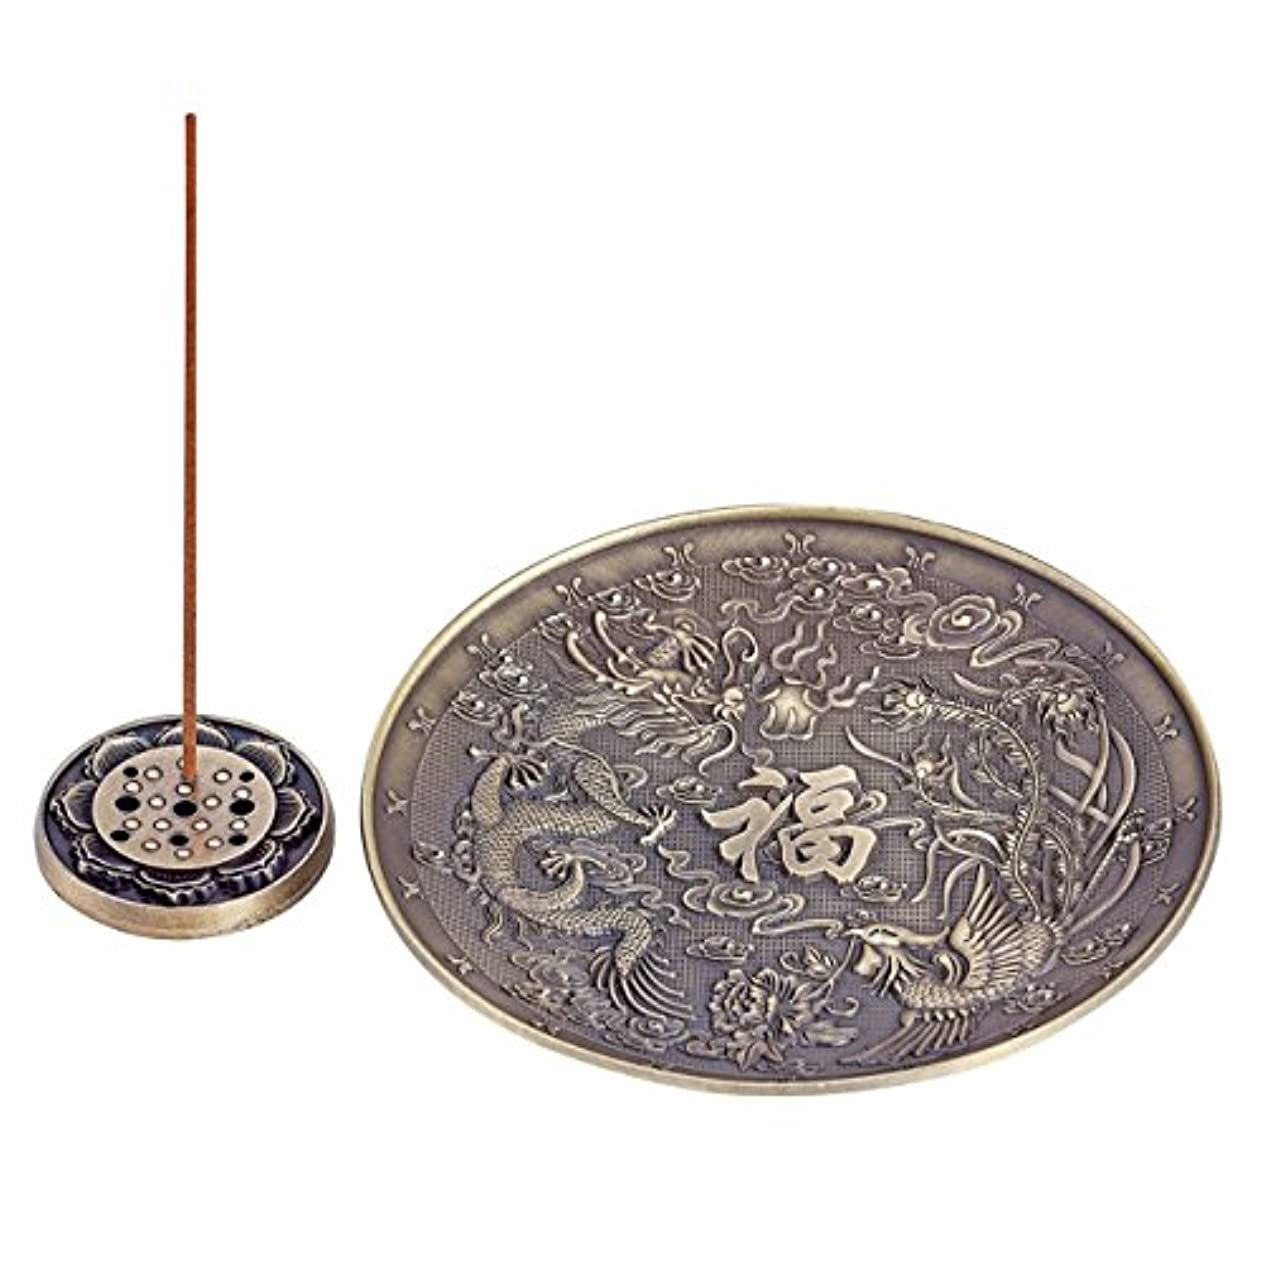 内訳人生を作る何Uoon Dragon Stick Incense Burnerホルダー、4異なるIncense Holder for Stick Incense、コイルIncense UOON-DRAGON088